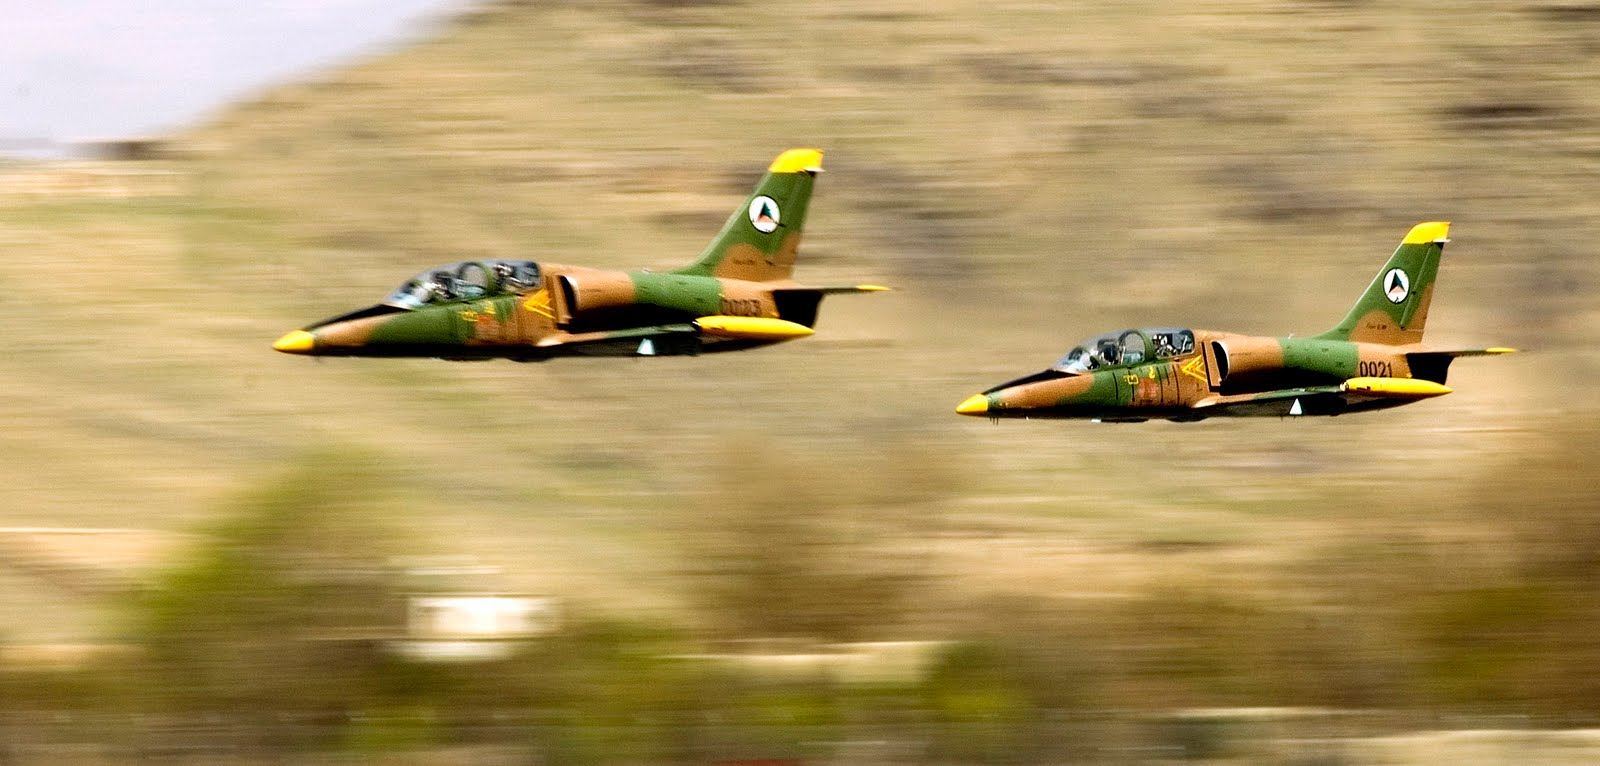 Afghan National Air Corps L-39 Albatross jets